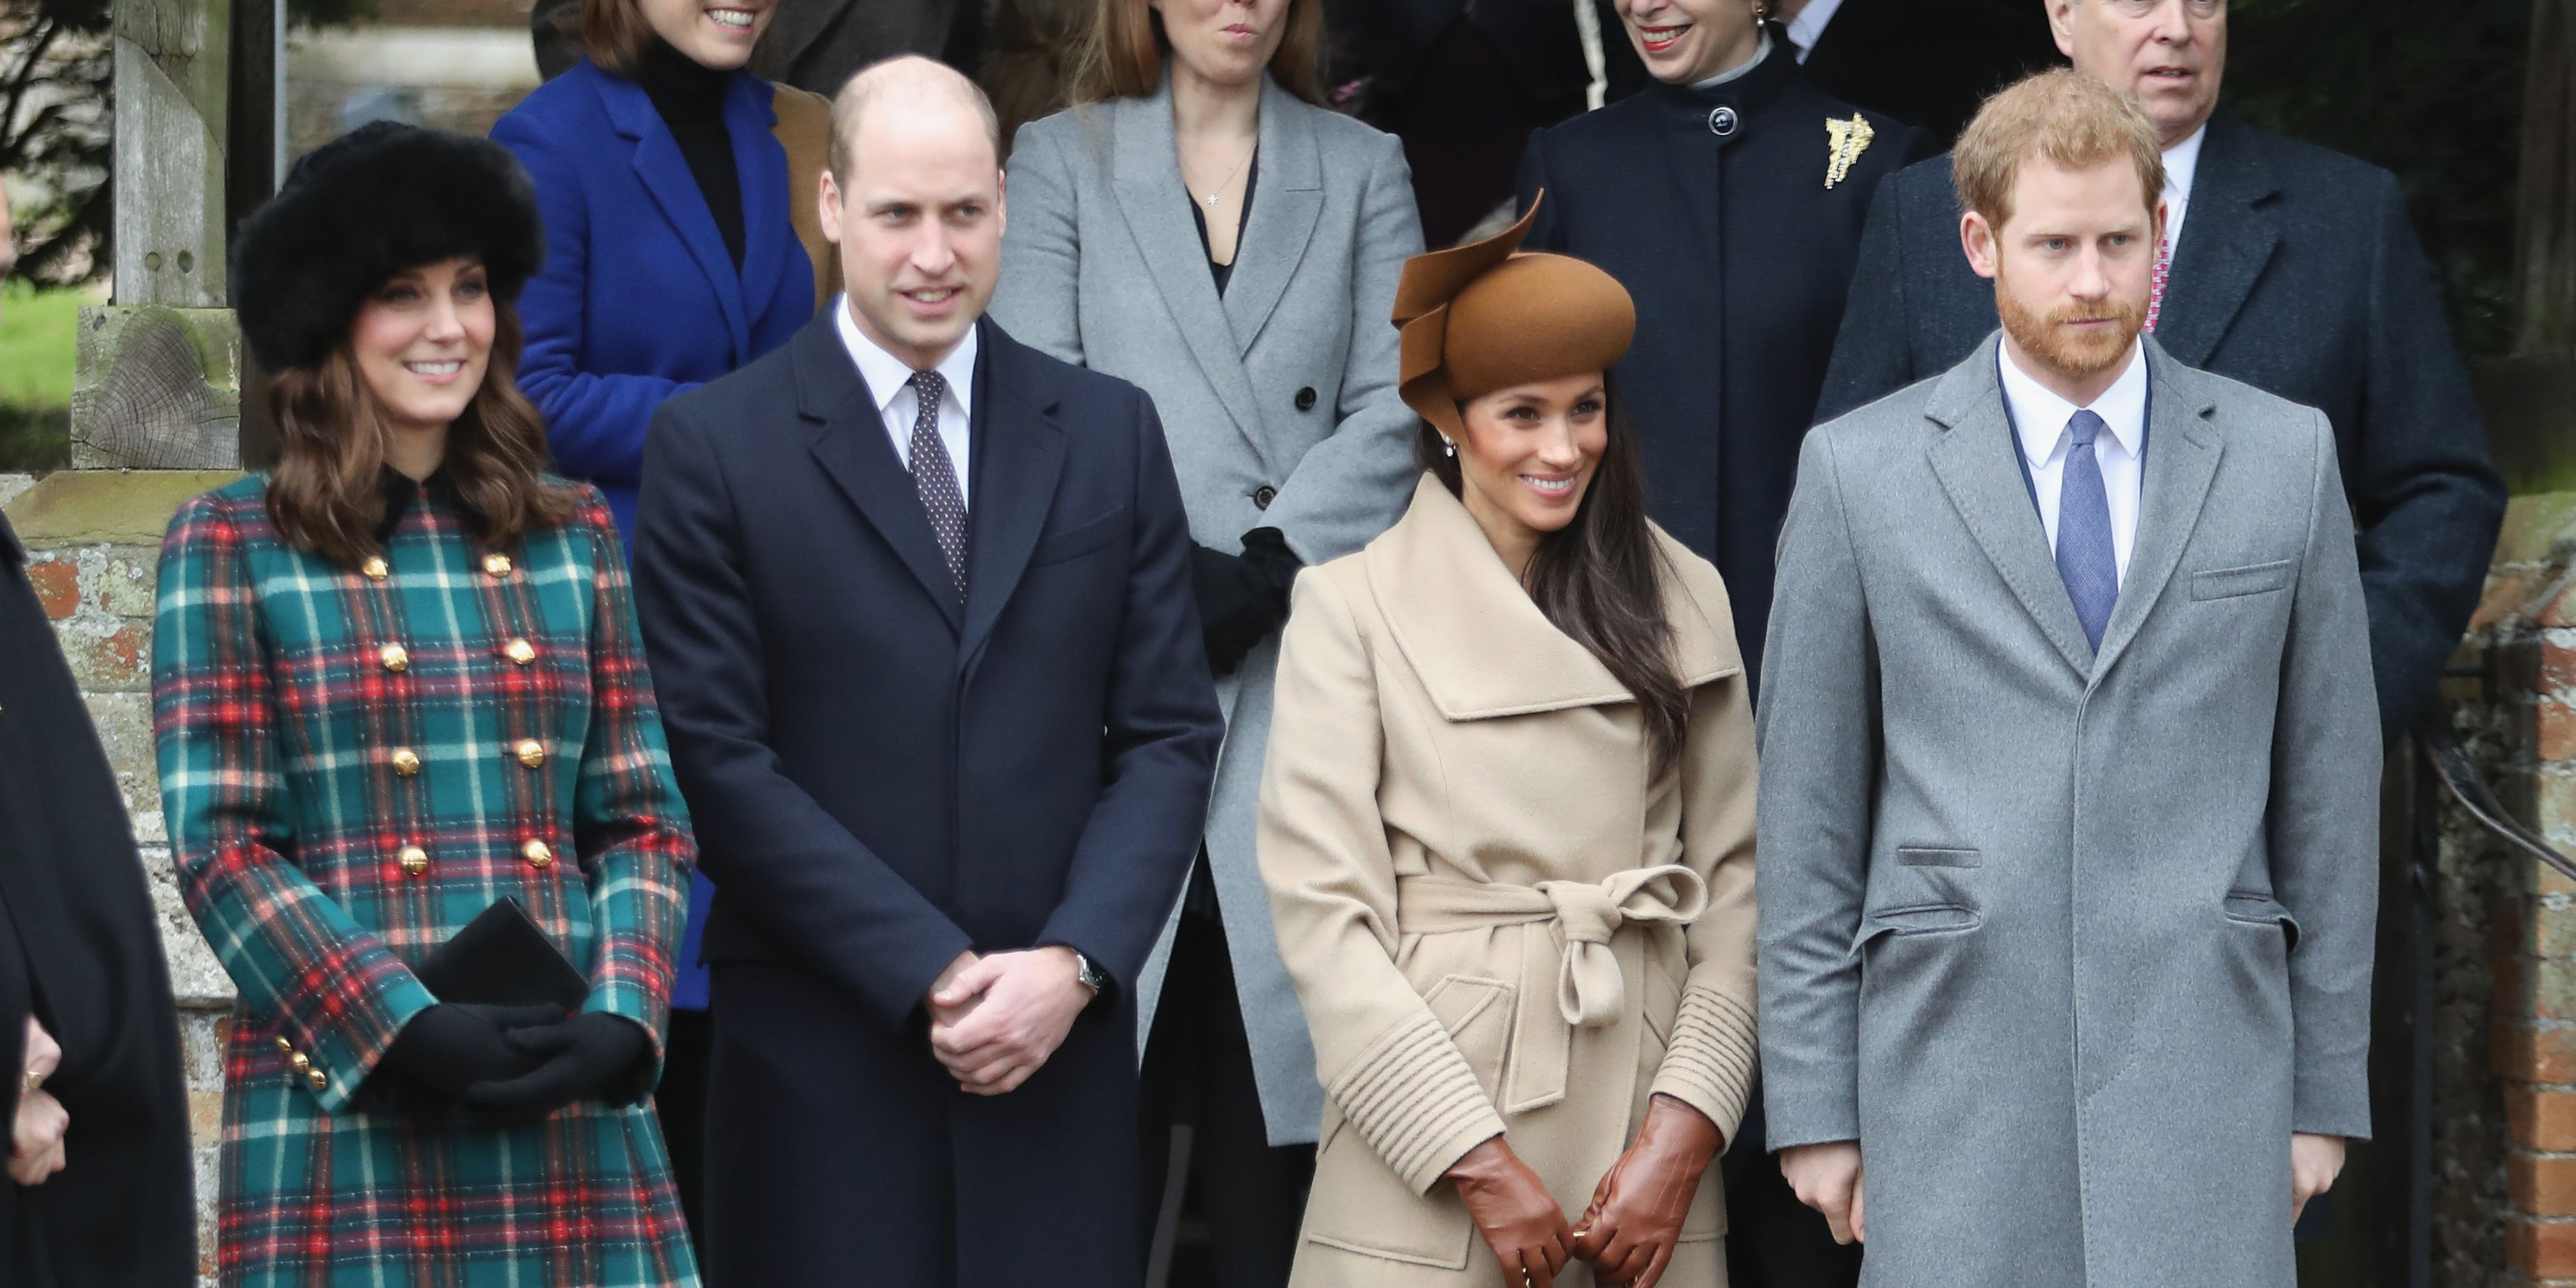 Will Kate And William Spend Christmas With Meghan And Harry Amidst 'Feud' Rumors?